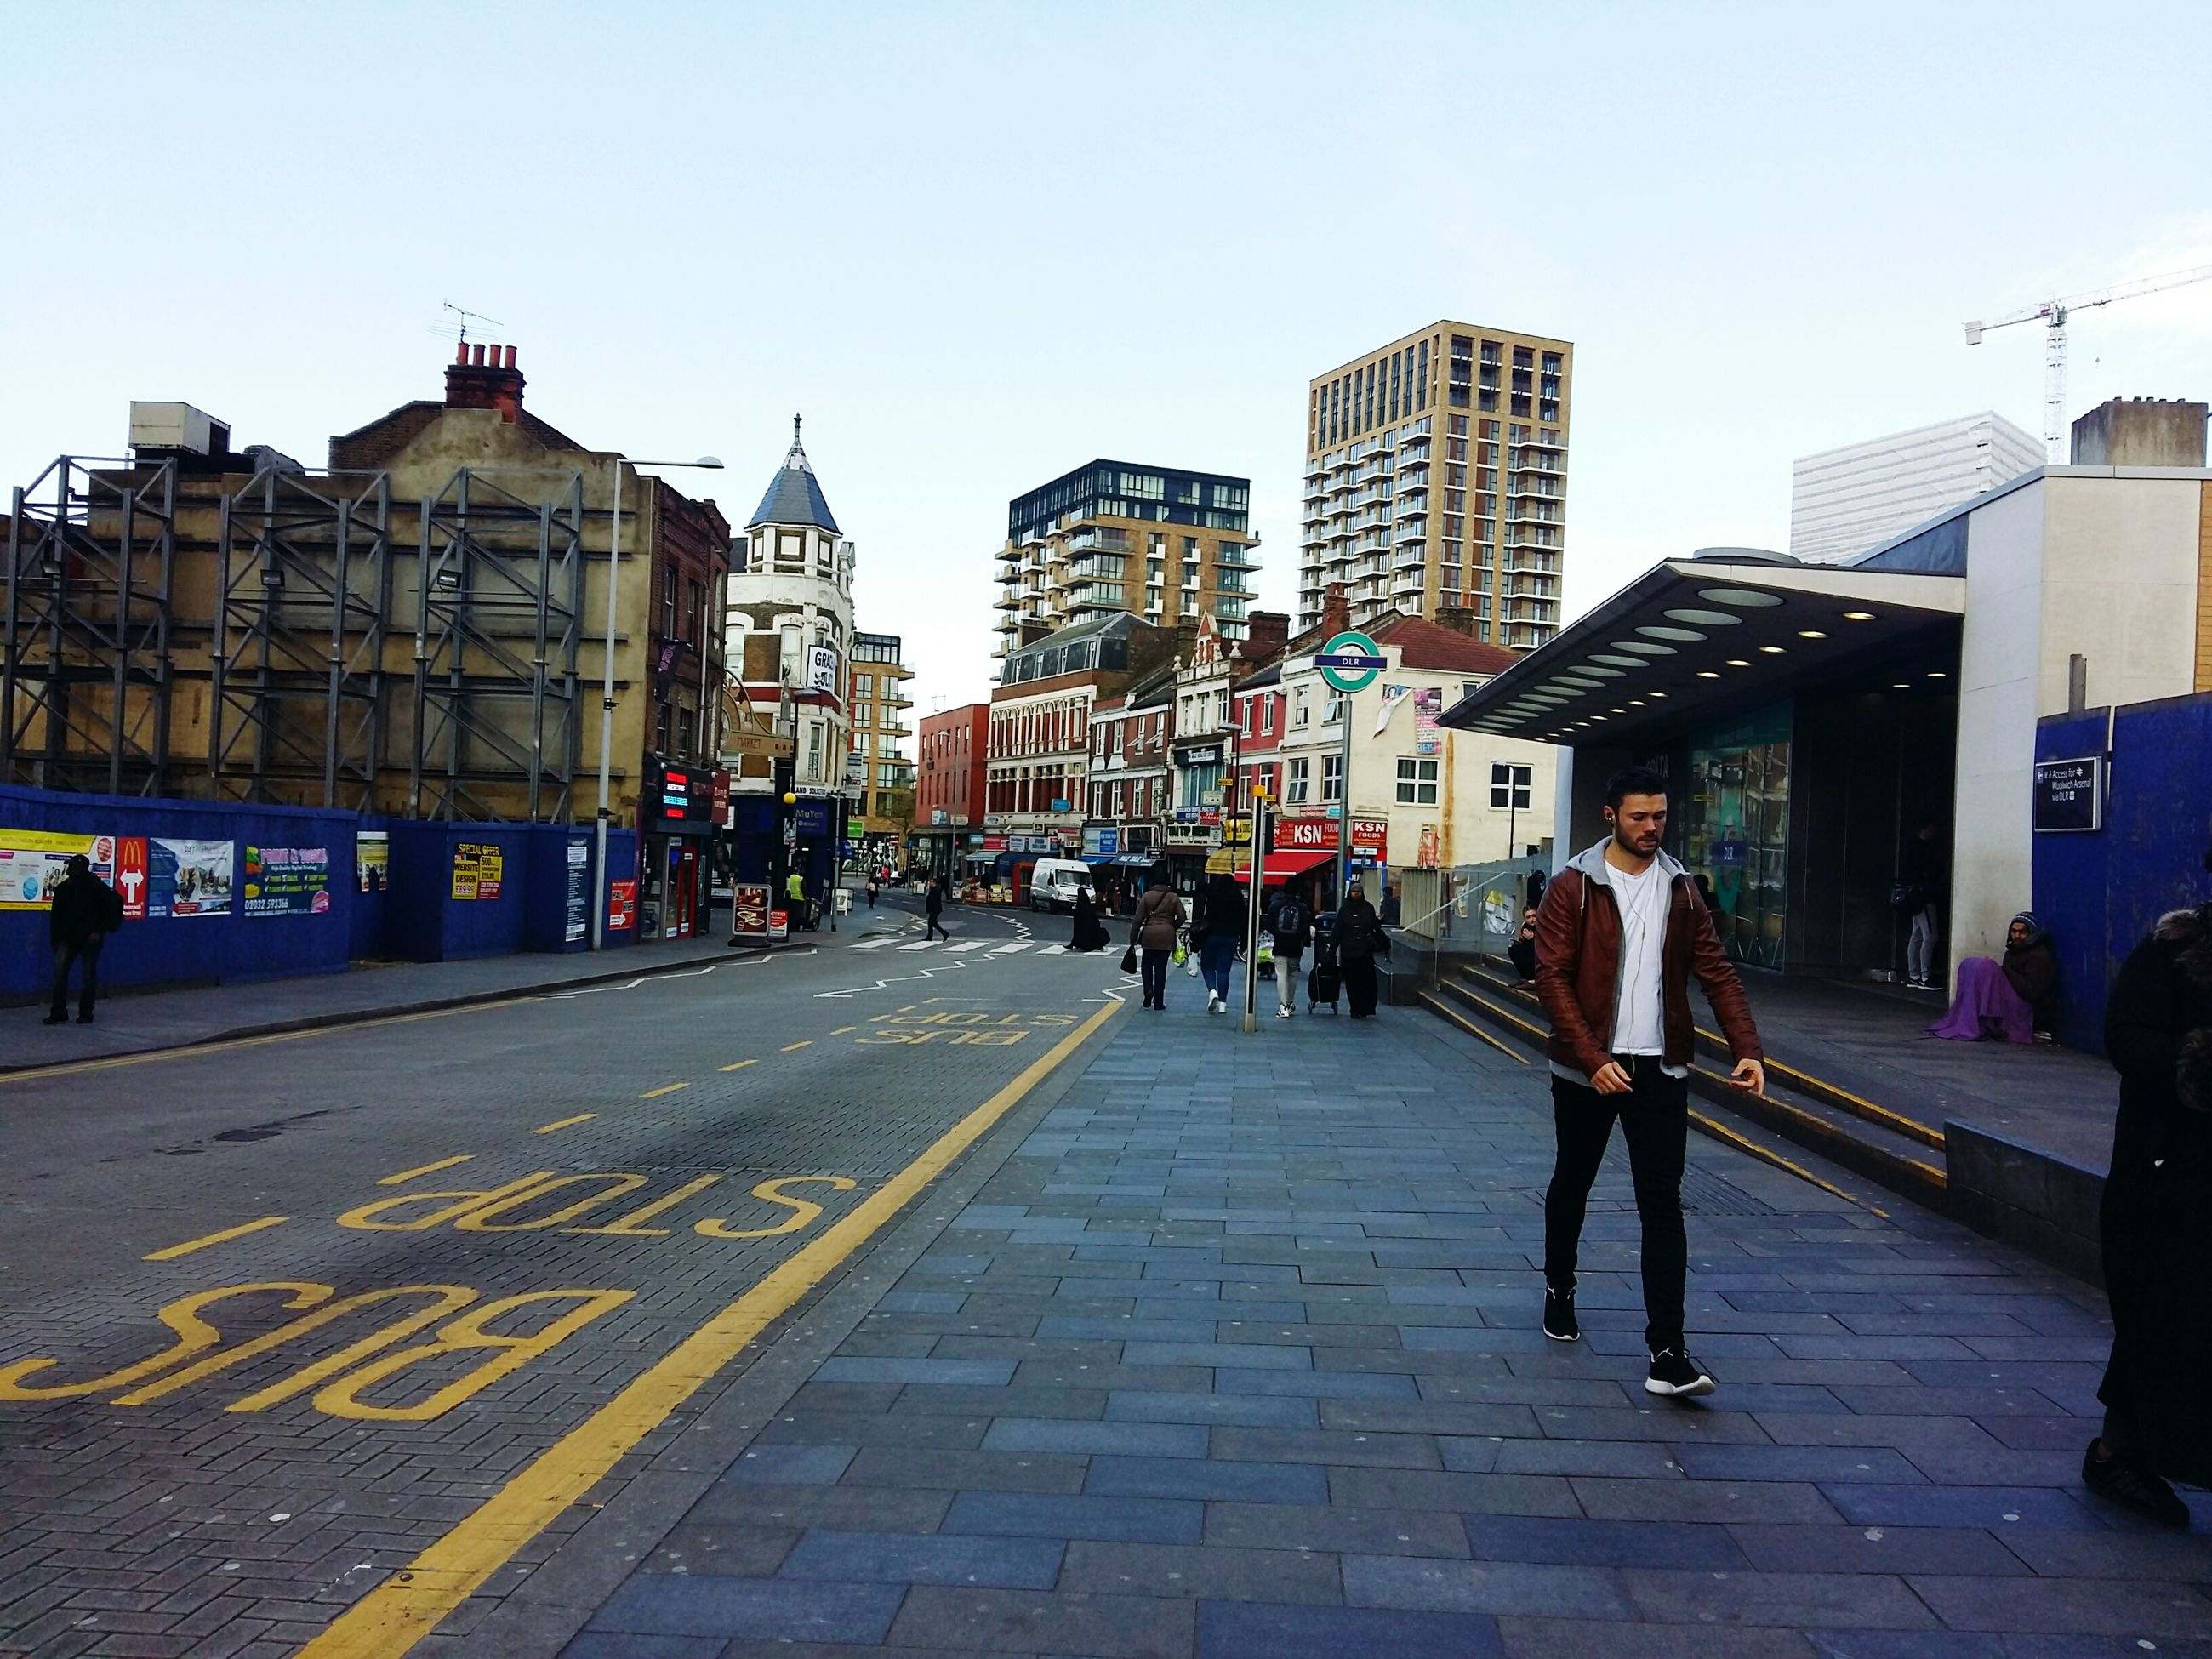 building exterior, architecture, built structure, men, city, clear sky, street, walking, person, large group of people, lifestyles, city life, transportation, road, the way forward, leisure activity, city street, sky, road marking